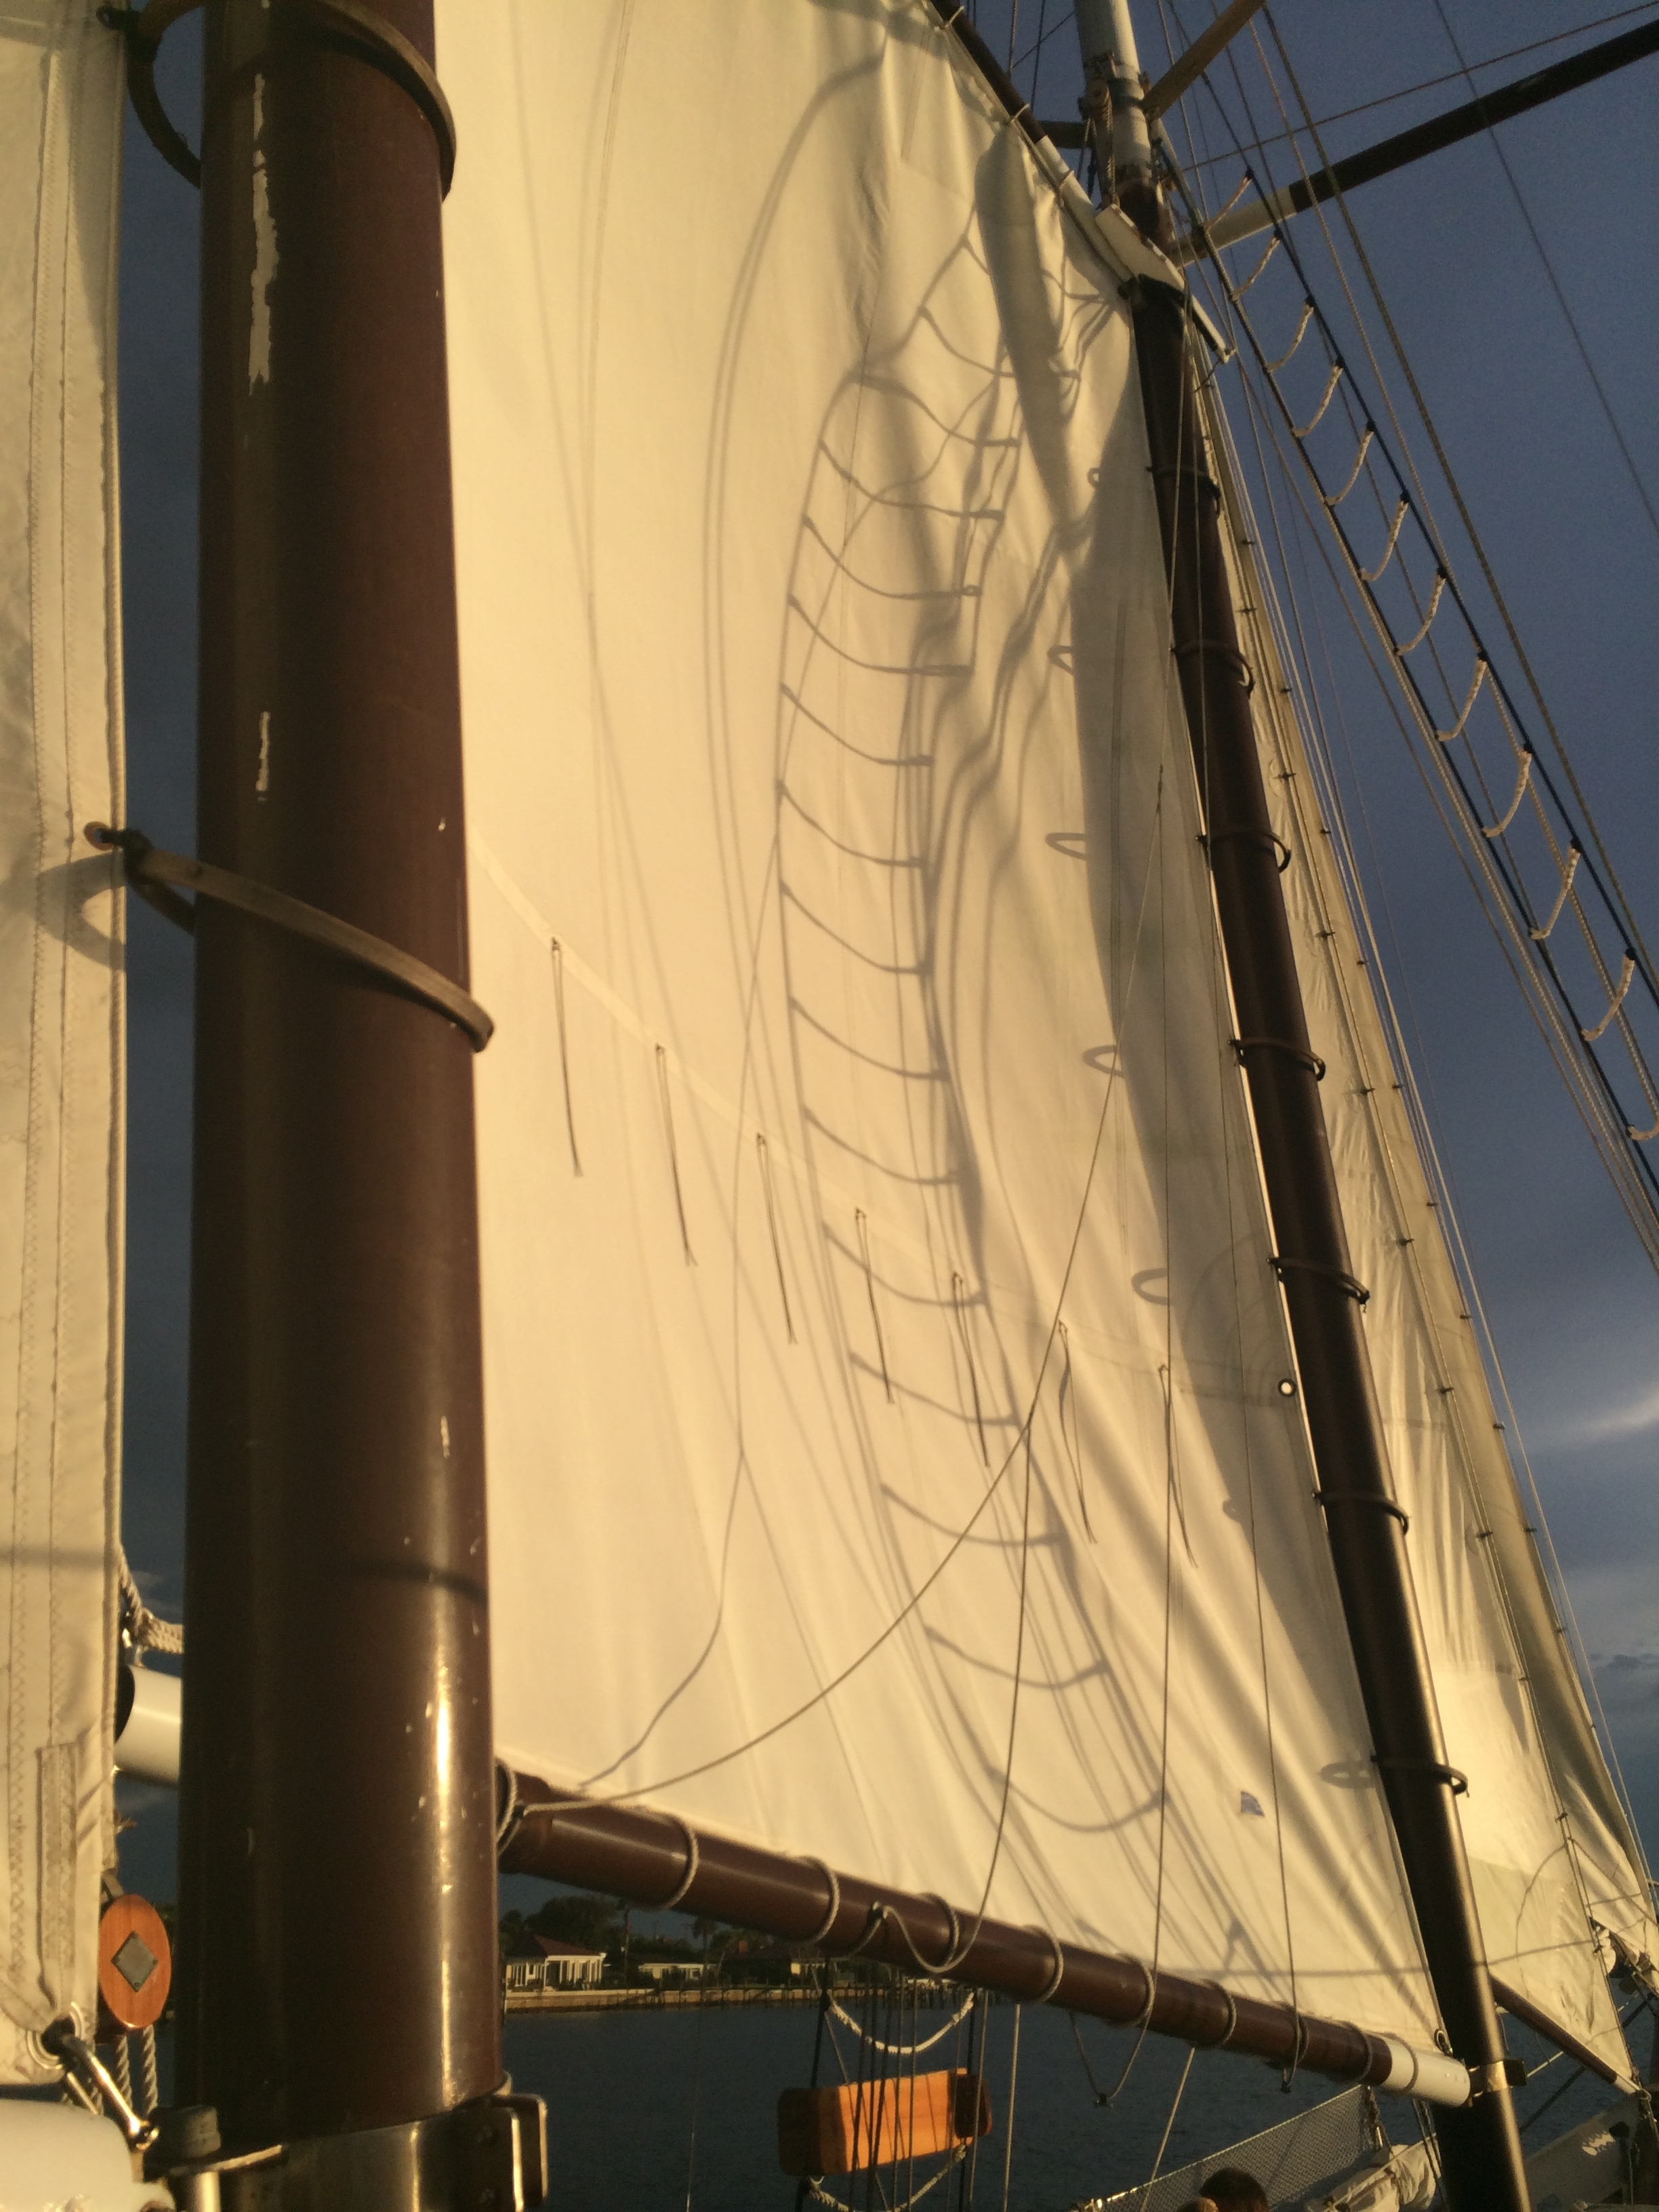 Sunset light on the sails of the Schooner Freedom